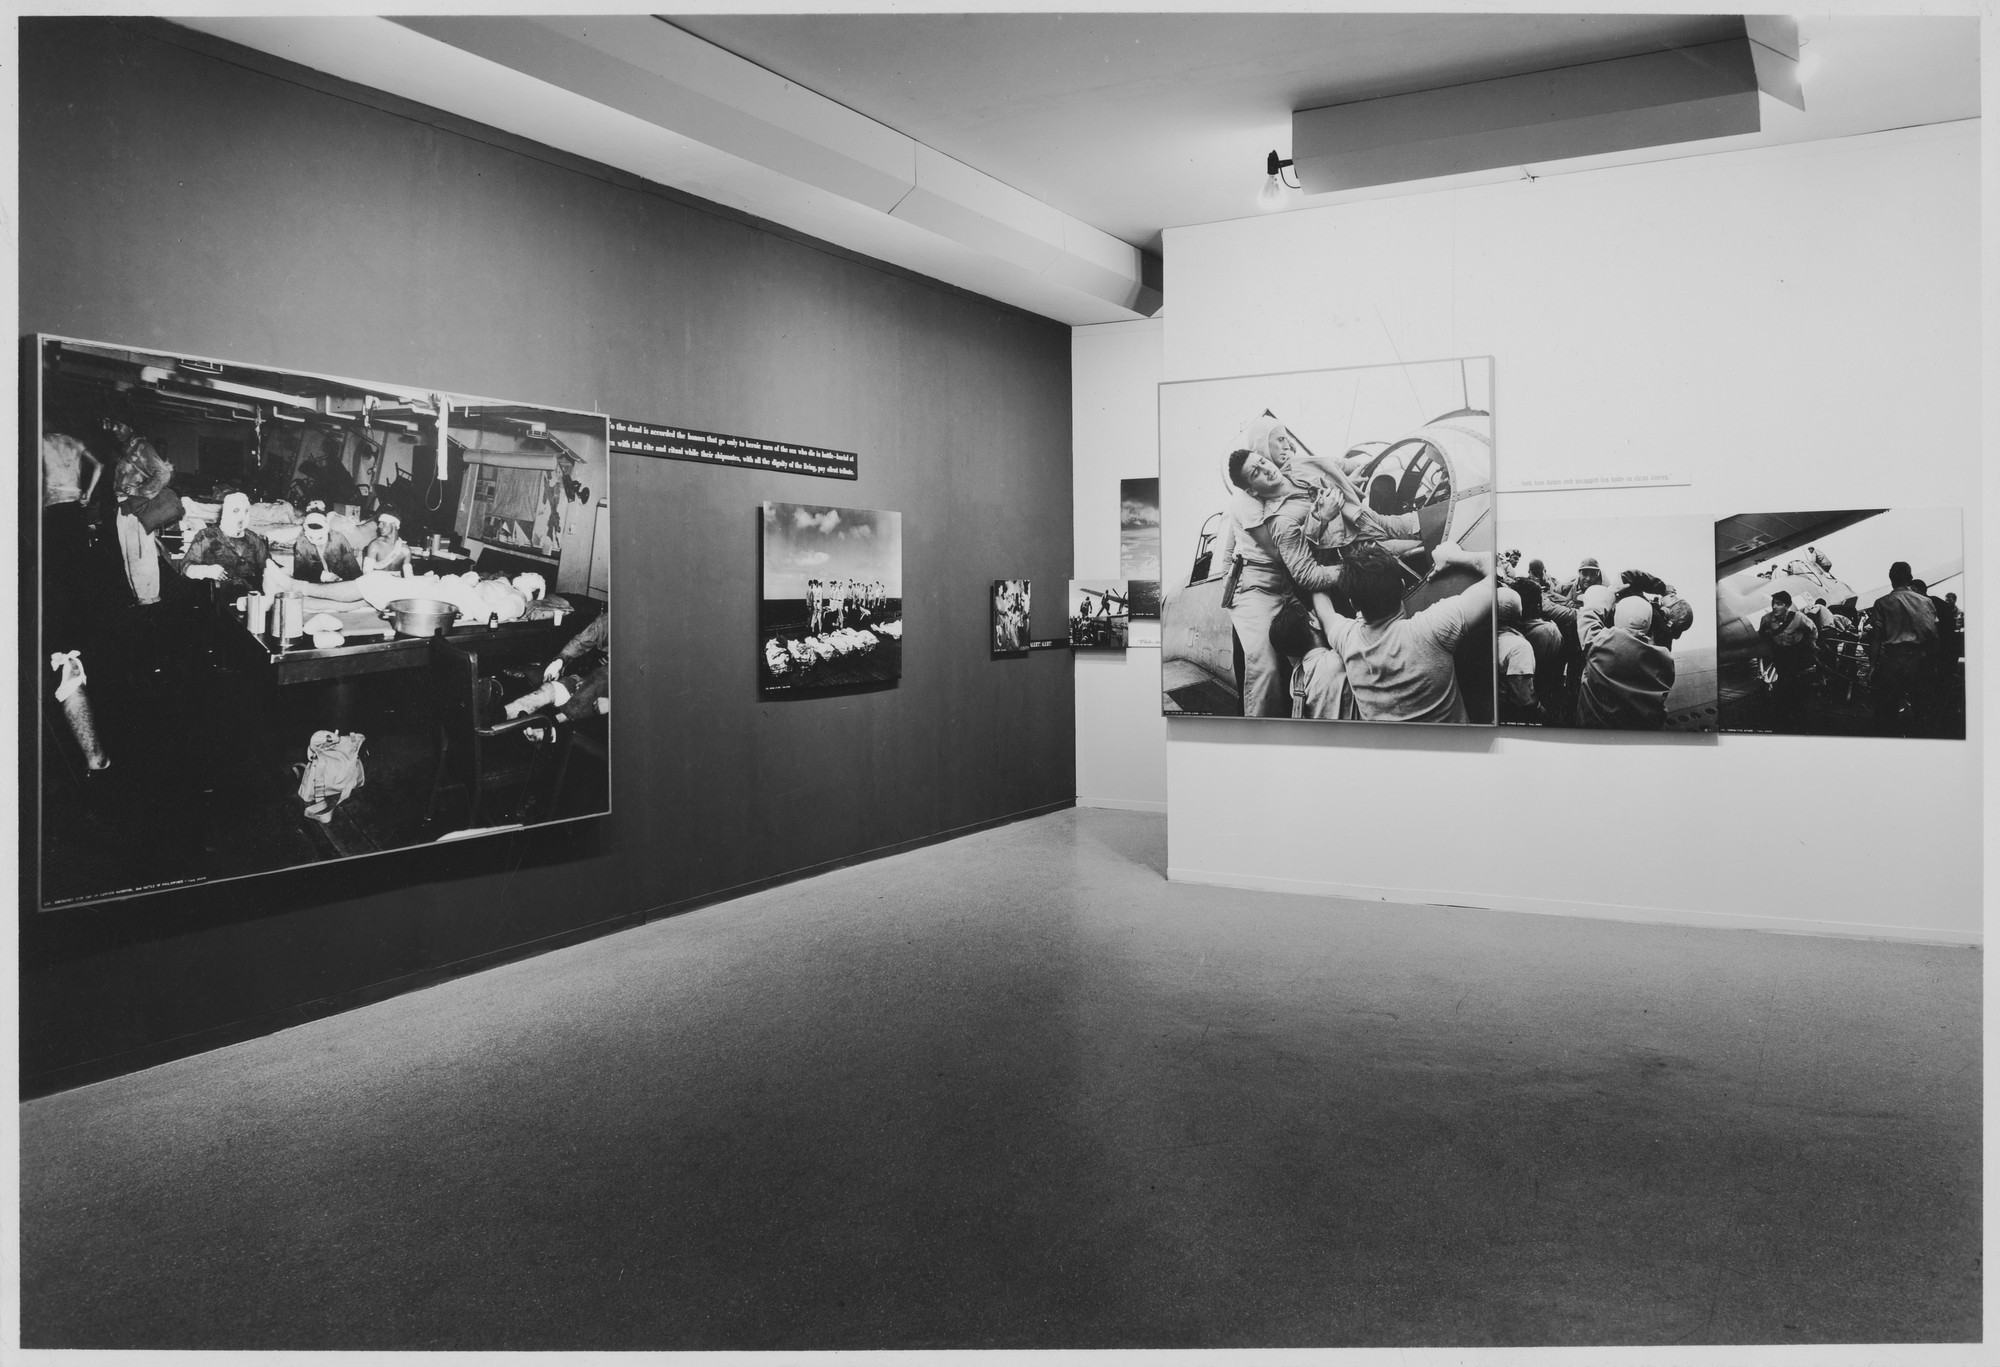 "Installation view of the exhibition, ""Power in the Pacific:  Battle Photographs of our Navy in Action on the Sea and in the Sky."" January 23, 1945–March 20, 1945. Photographic Archive. The Museum of Modern Art Archives, New York. IN275.1. Photograph by Soichi Sunami."